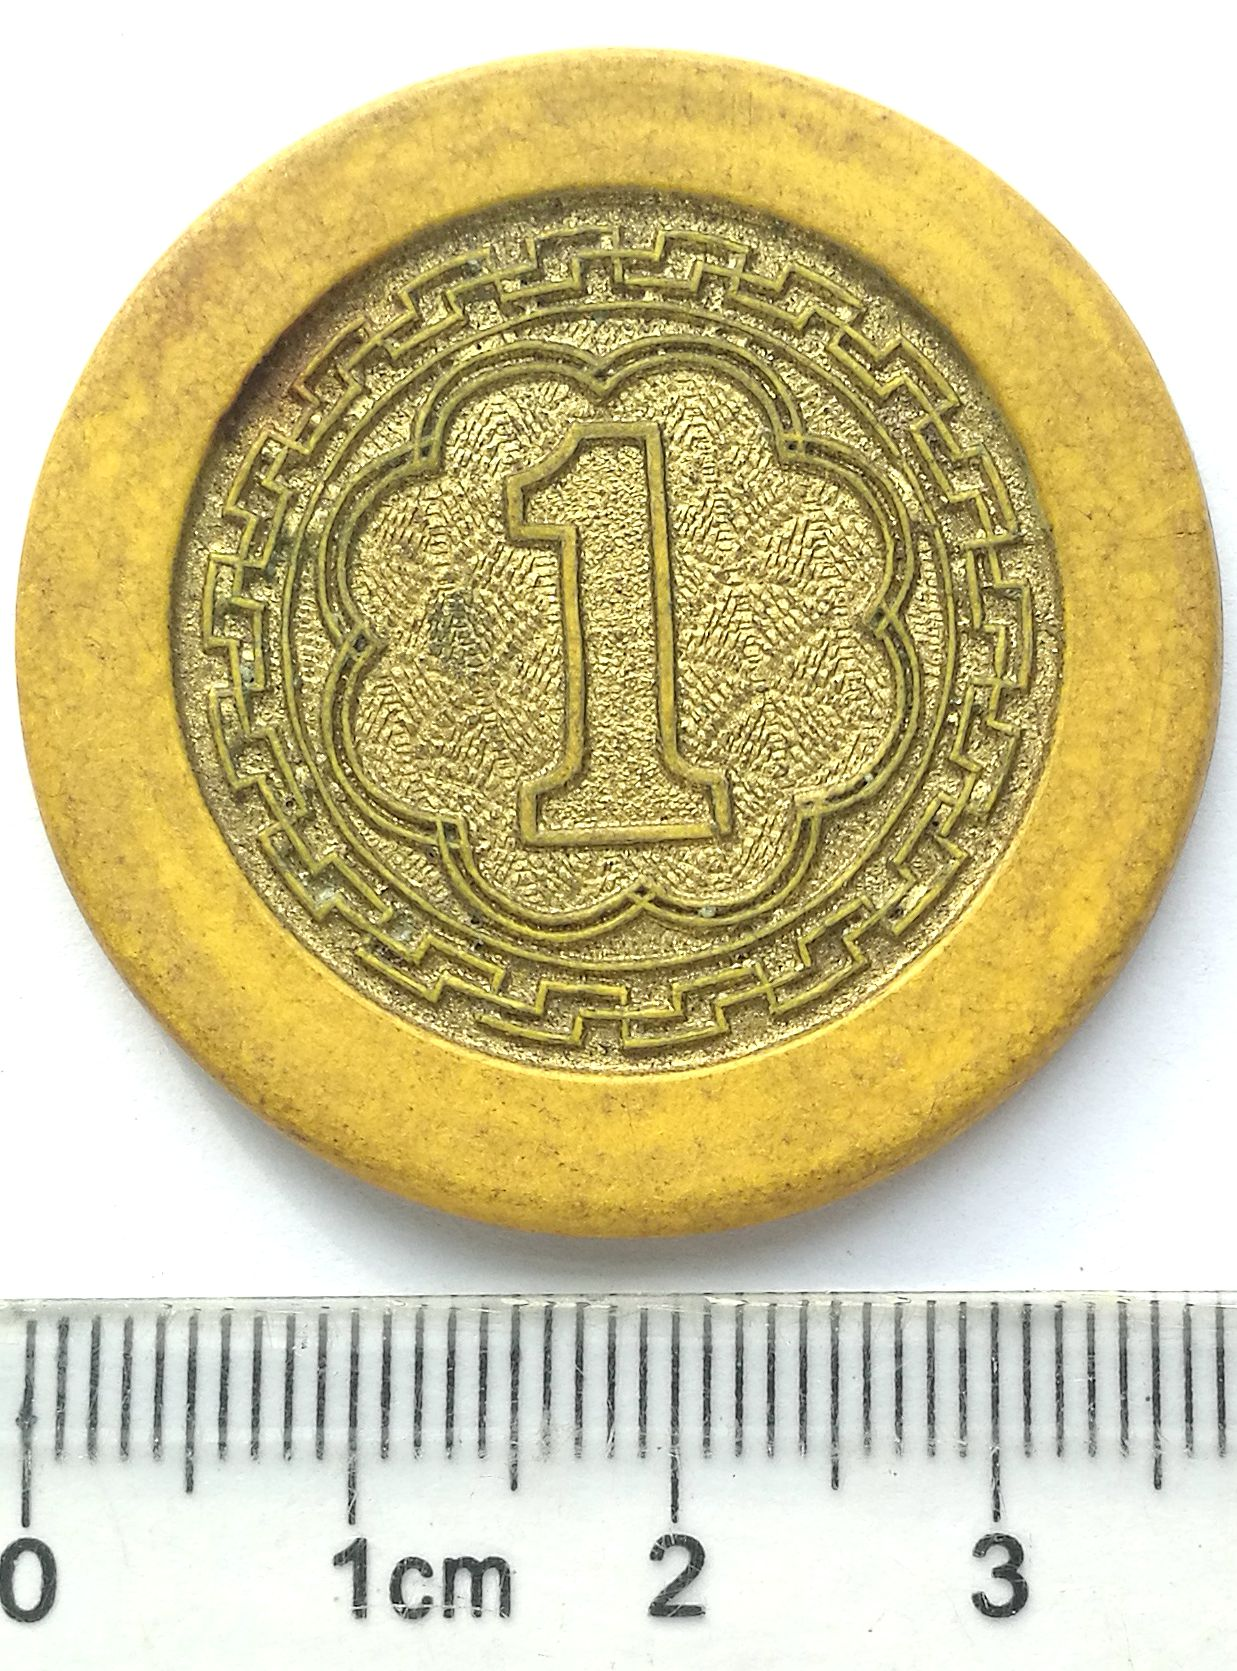 BT635, Shanghai Casino Token 1 Dollar, Rare Yellow, (Bakelite) 1920's